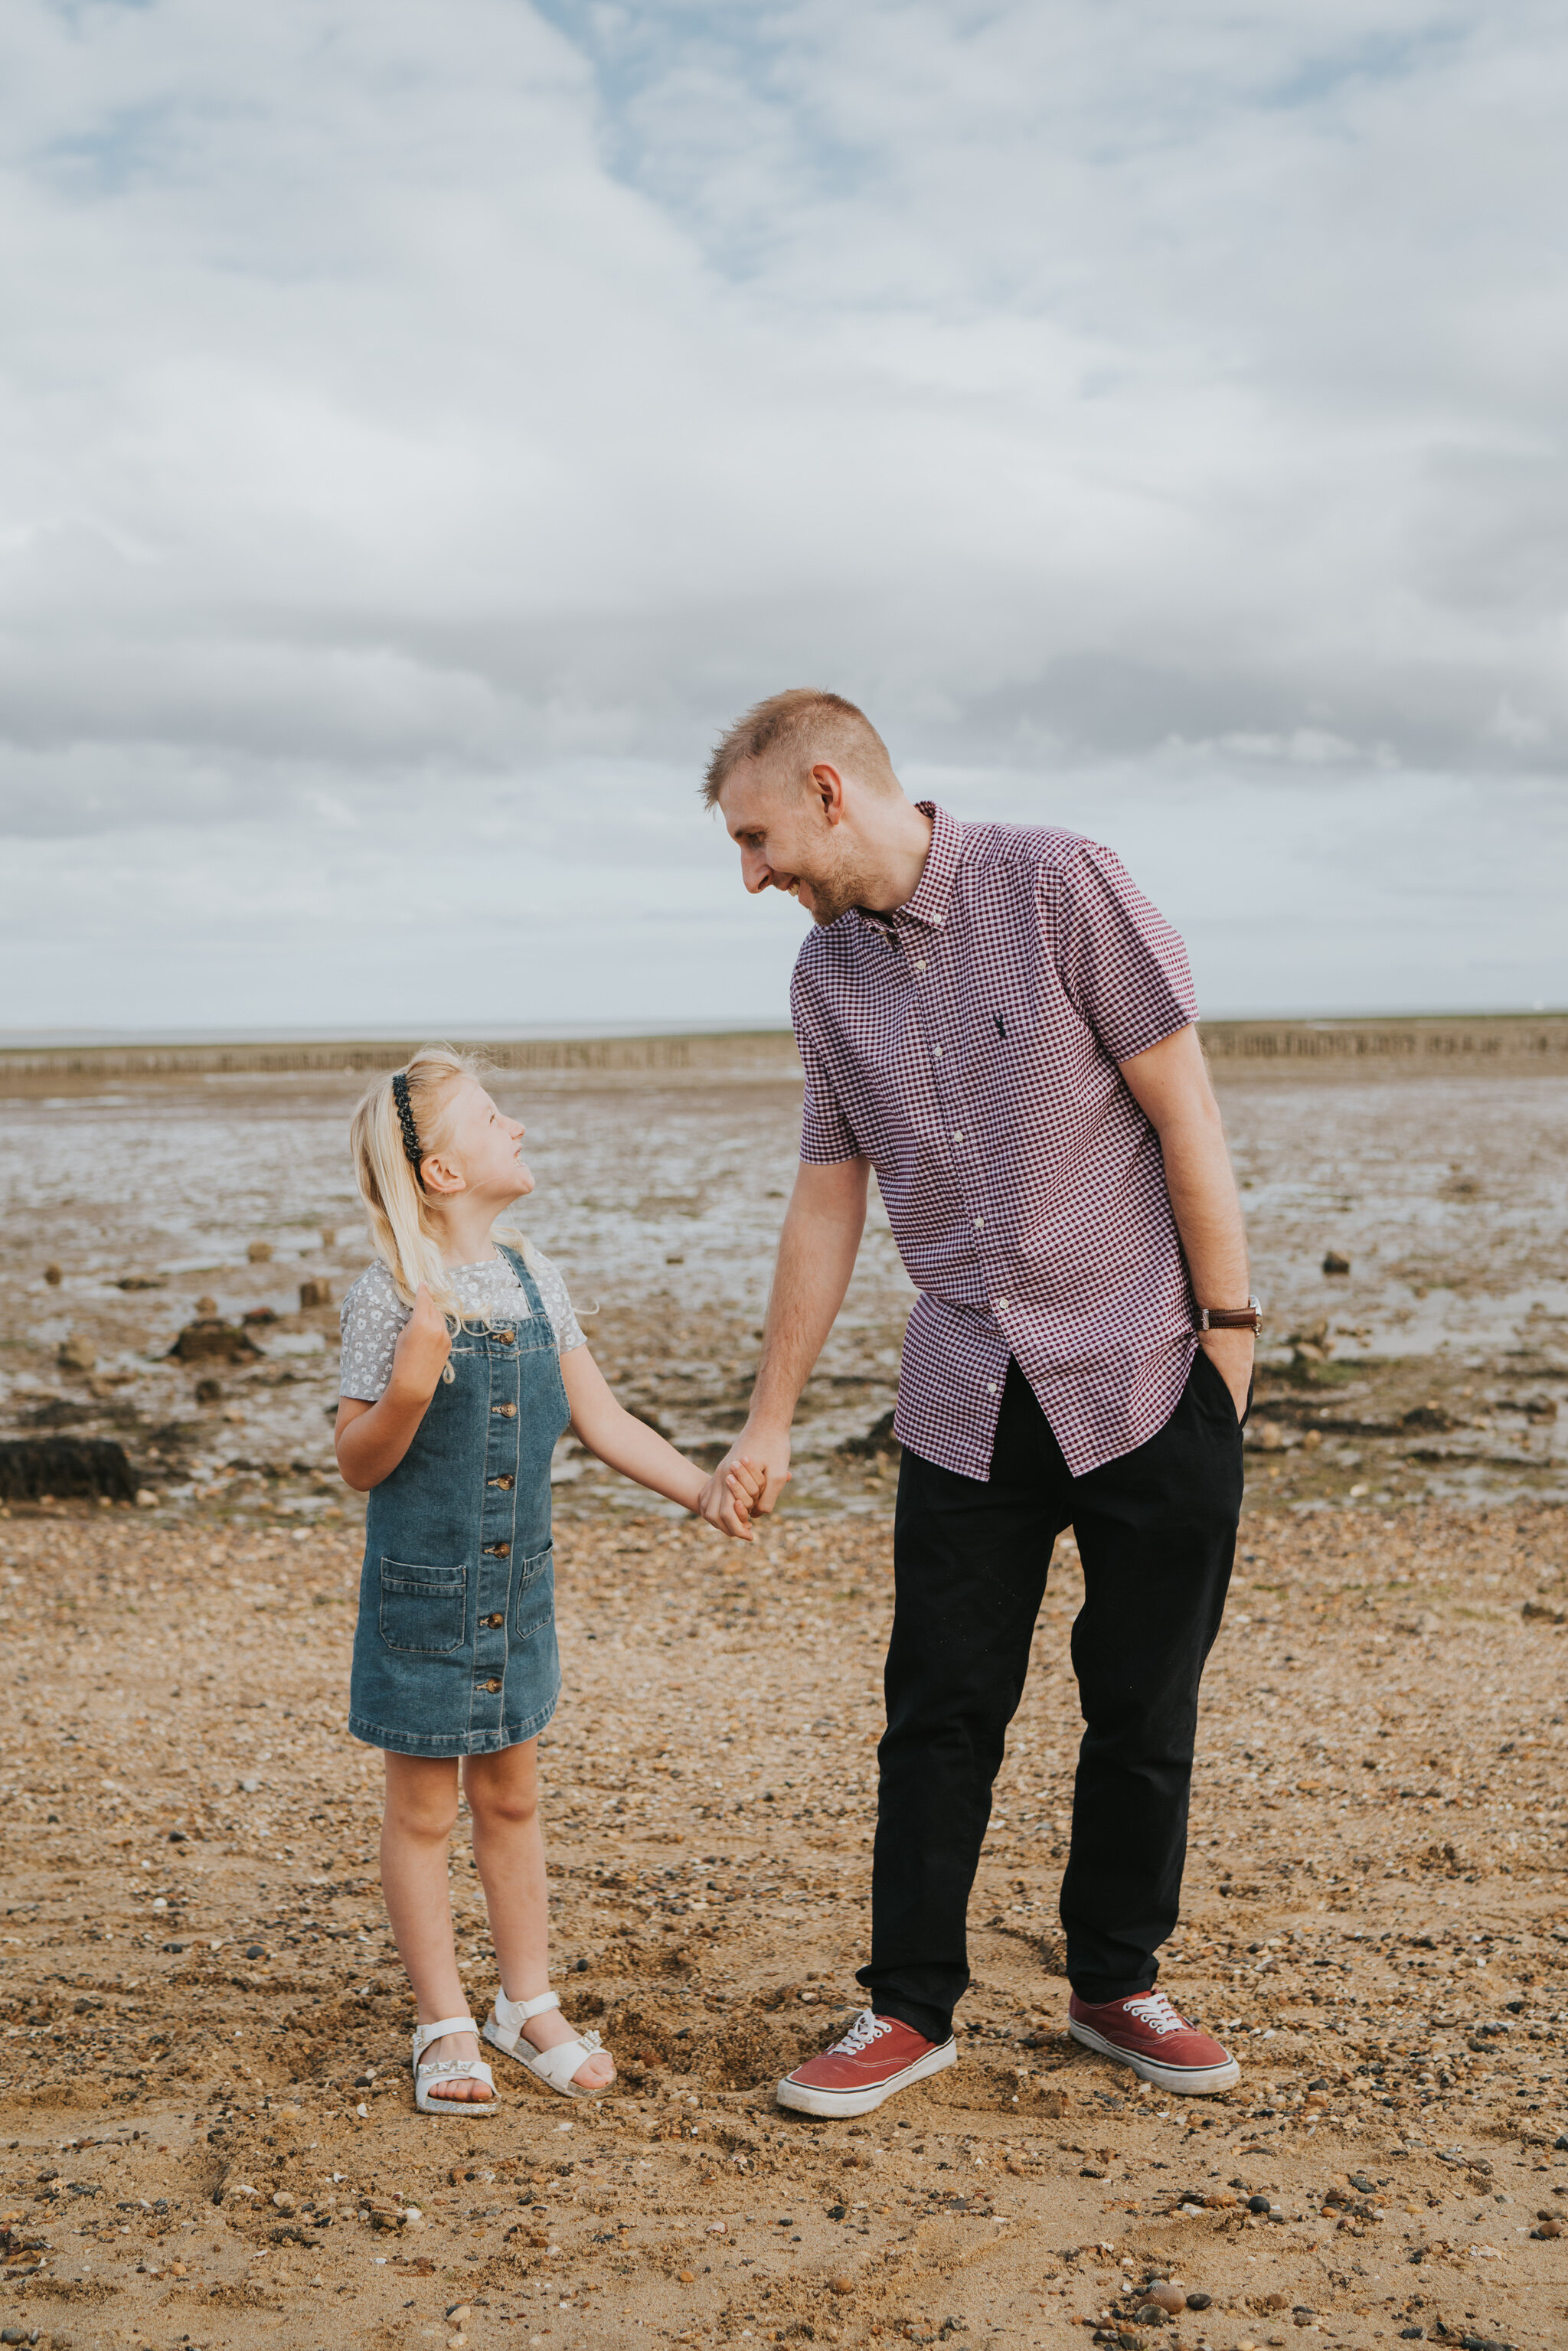 celebratory-beach-family-session-thomson-family-cudmore-grove-east-mersea-grace-elizabeth-colchester-essex-devon-suffolk-and-norfolk-alternative-wedding-and-family-photographer (32 of 53).jpg